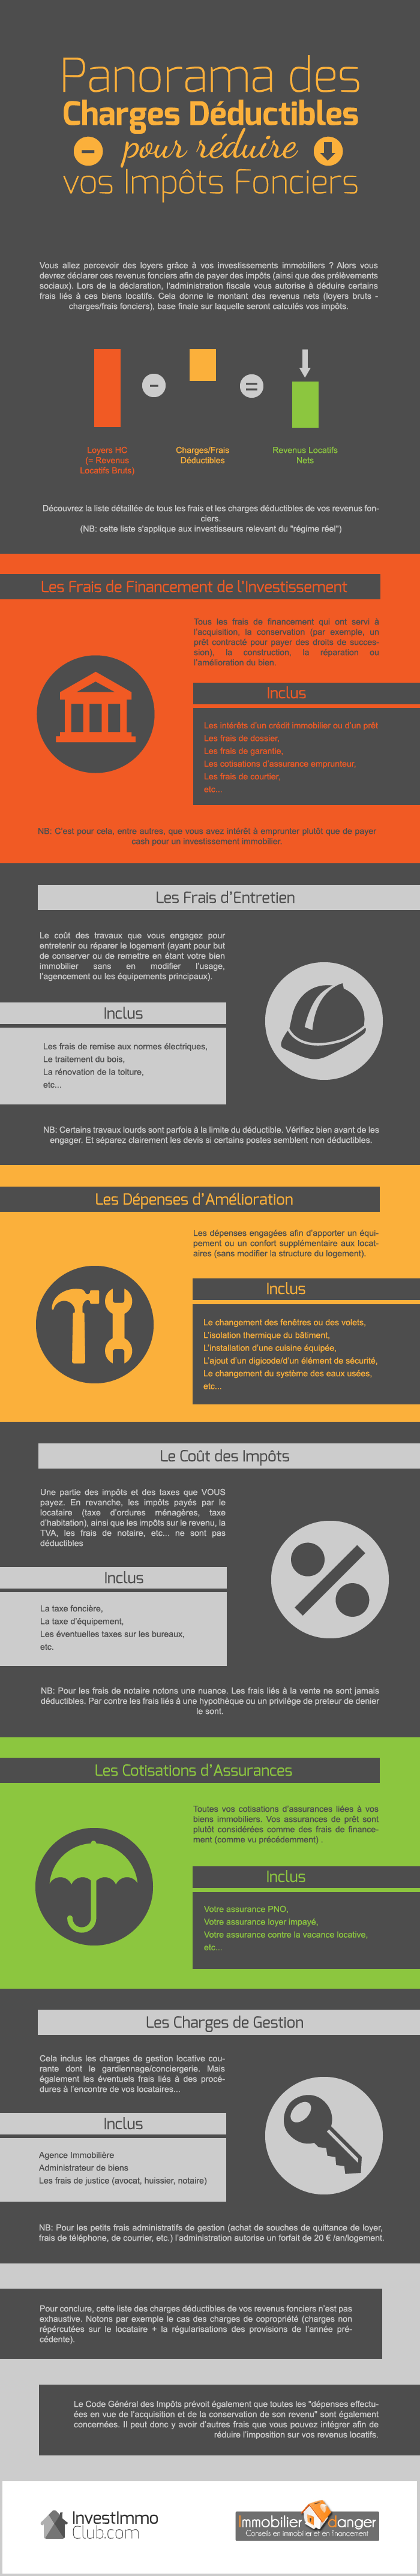 InvestImmoClub-Infographie-ChargesDeductibles